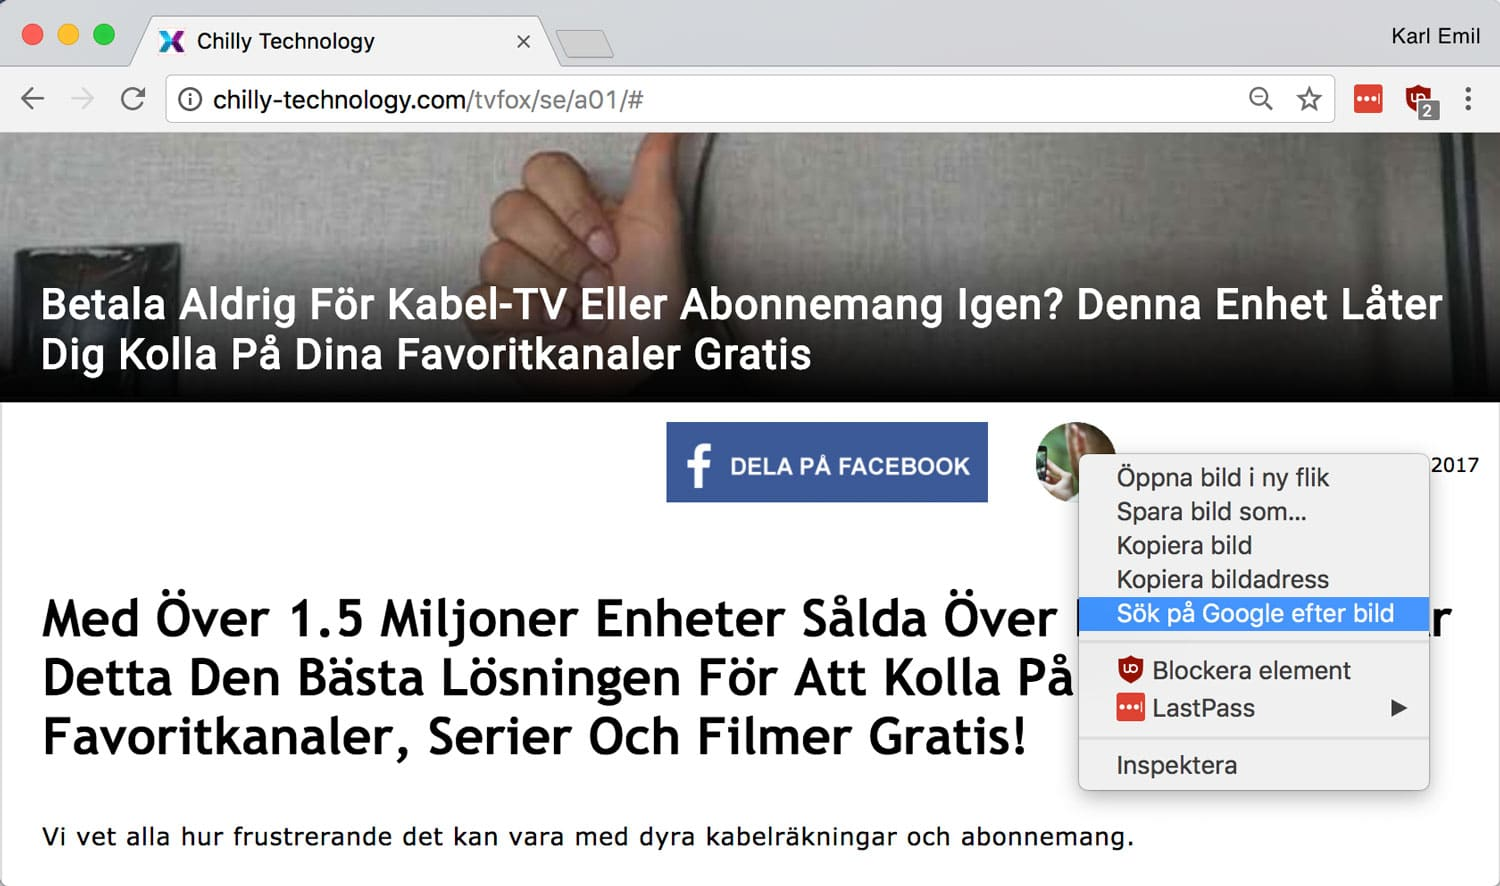 Bildsöksfunktionen i Google Chrome